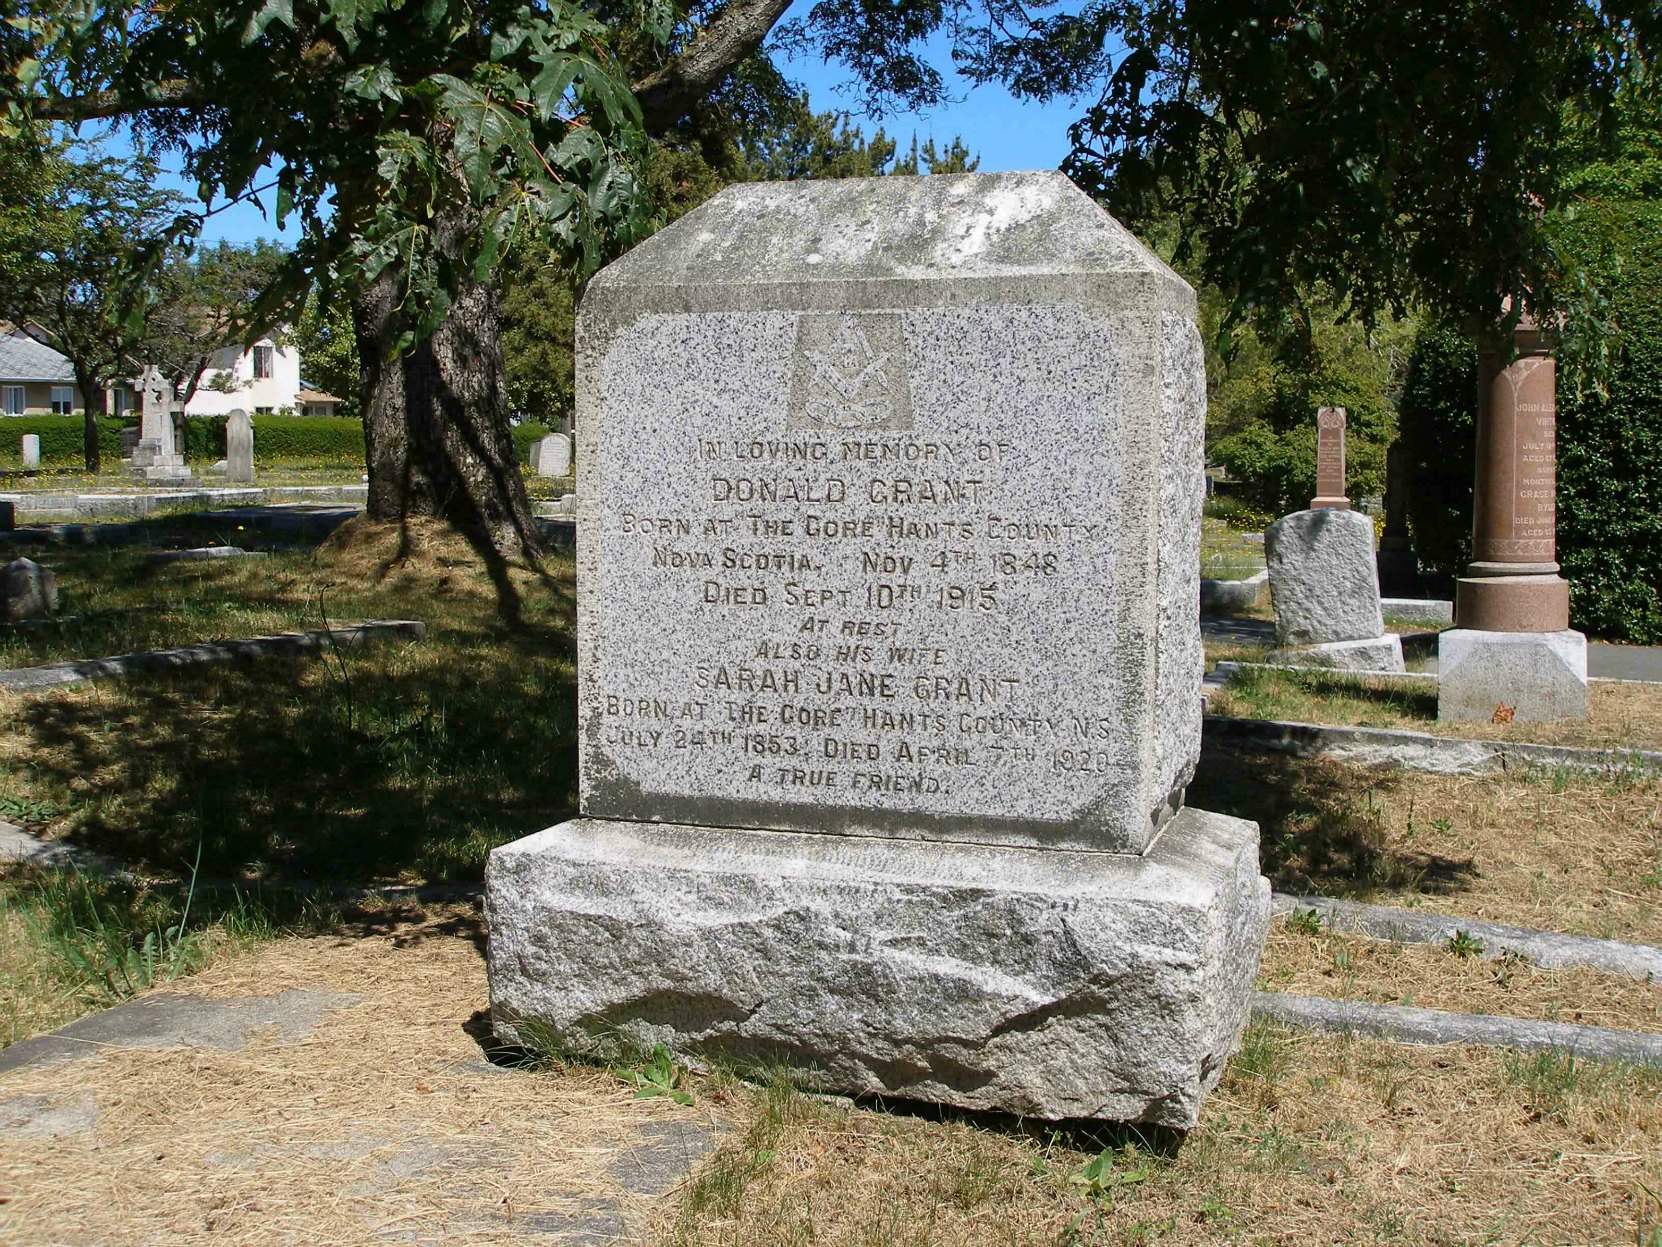 The grave of Donald Grant and Sarah Jane Grant, Ross Bay Cemetery, Victoria, B.C.